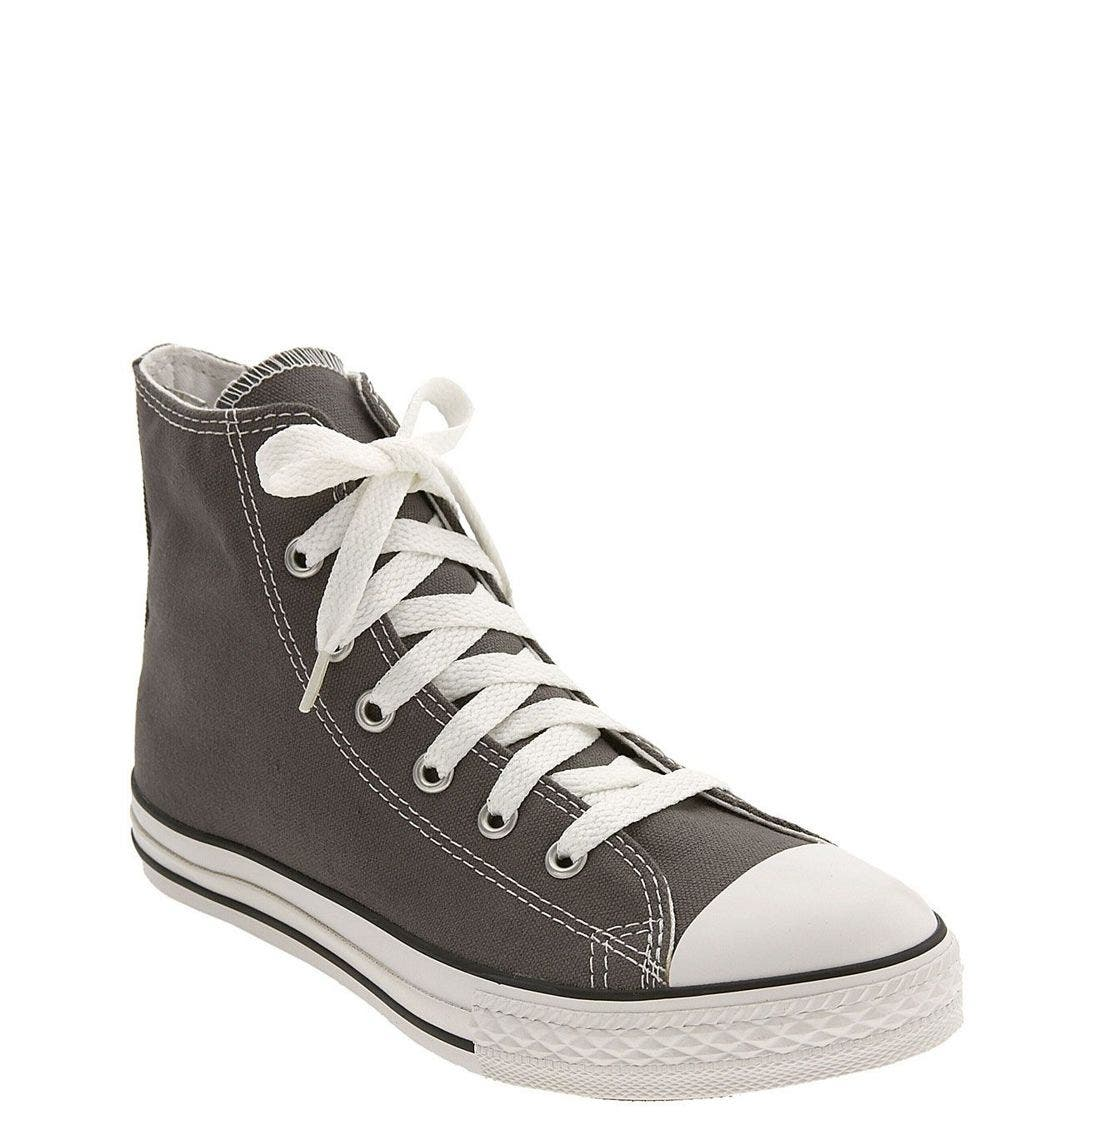 Alternate Image 1 Selected - Converse Chuck Taylor® High Top Sneaker (Baby, Walker & Toddler)